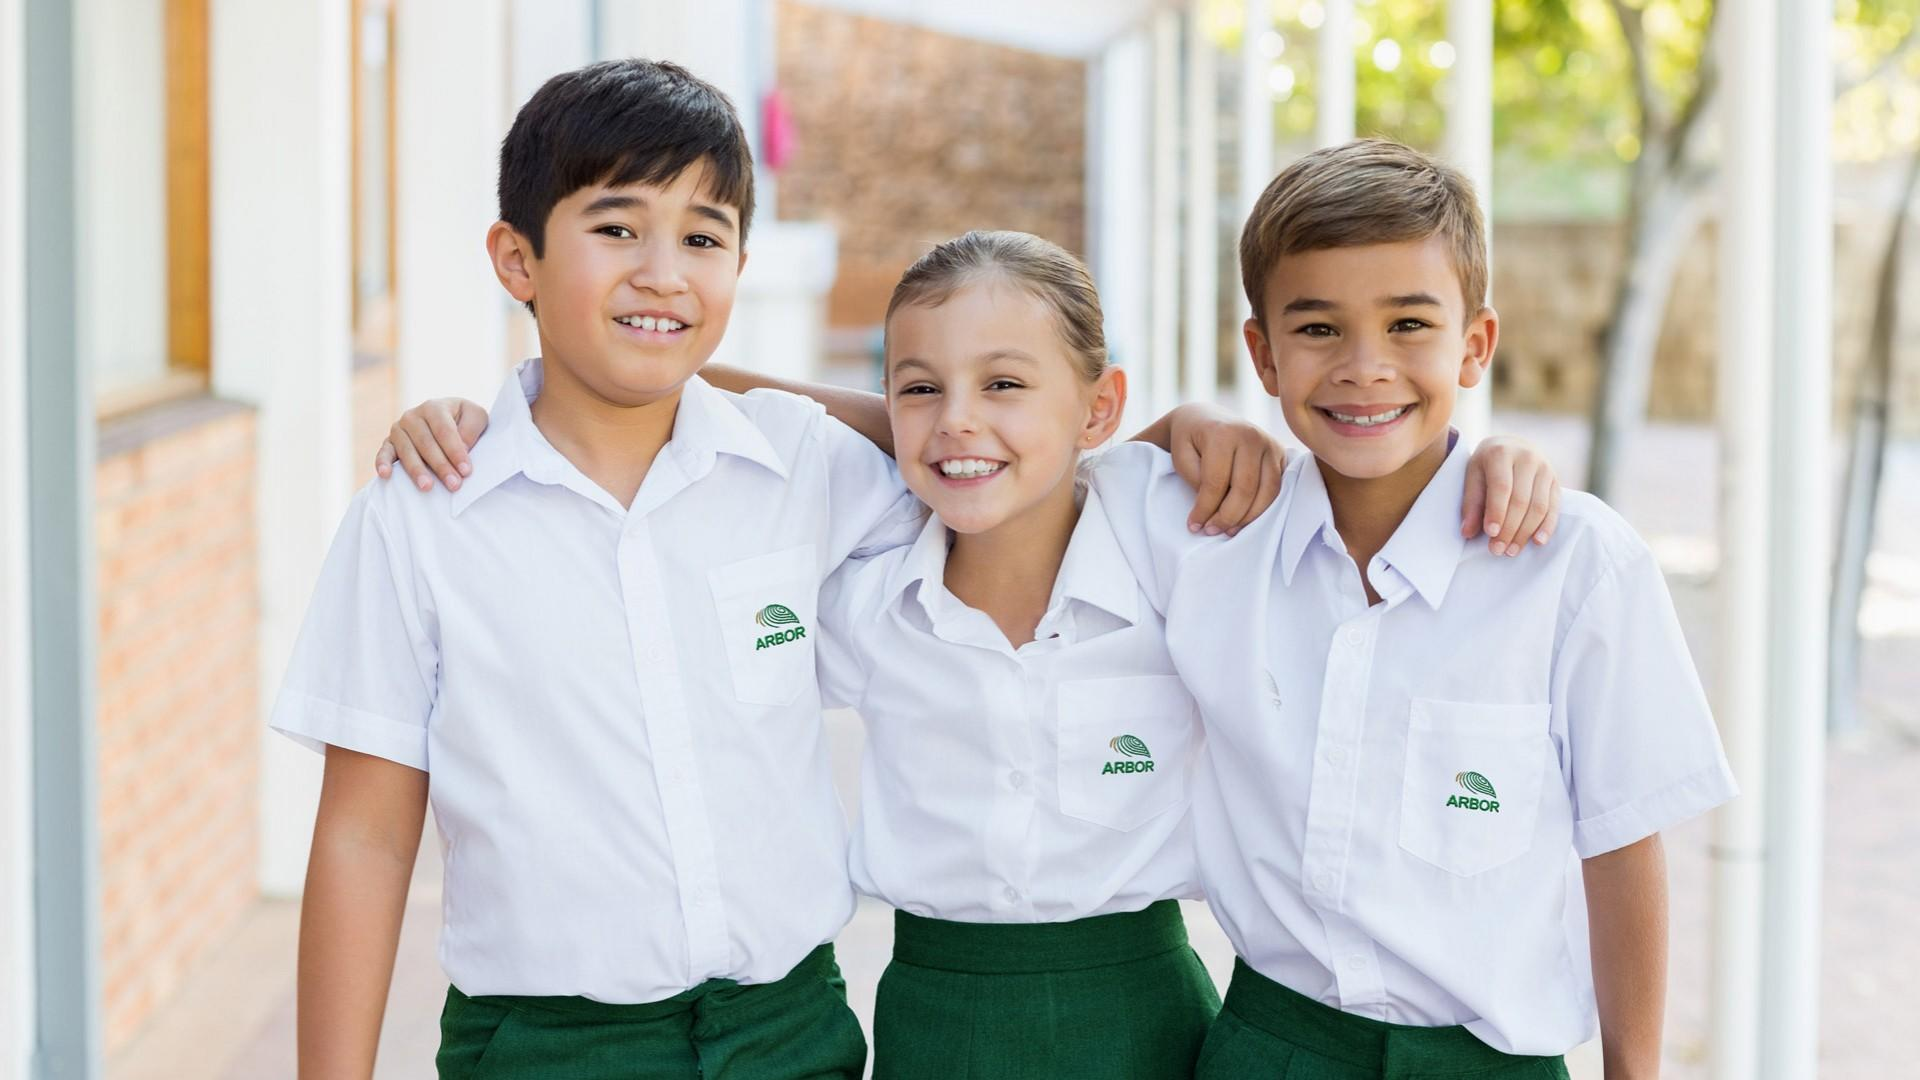 JOIE_BRANDS_ARBOR_SCHOOL_UNIFORMS_01